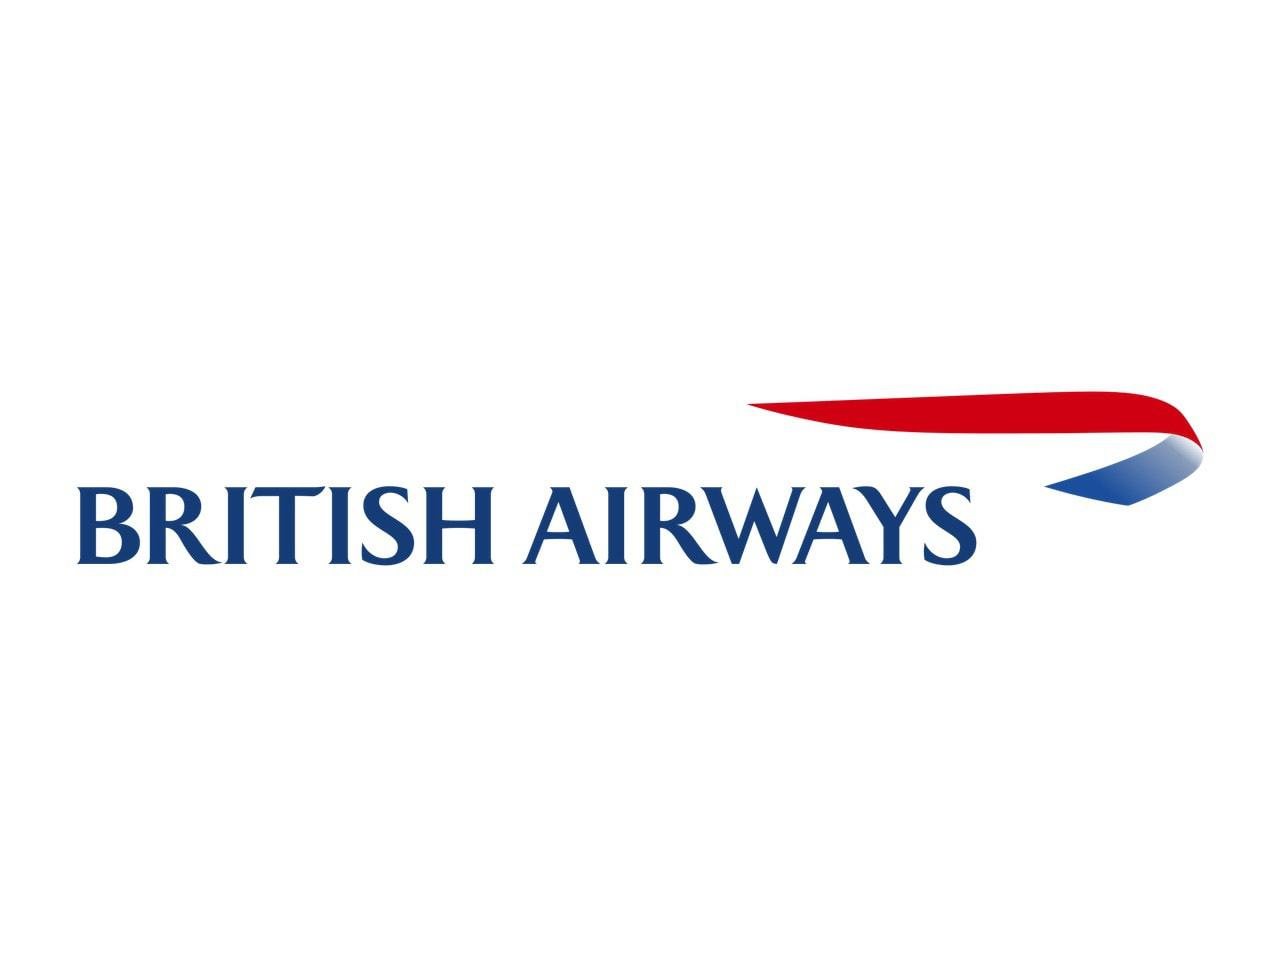 market and business analysis of british airways Based at heathrow airport (london), british airways (ba) is the largest global   its external and internal situation that includes its customers, the market, and its.